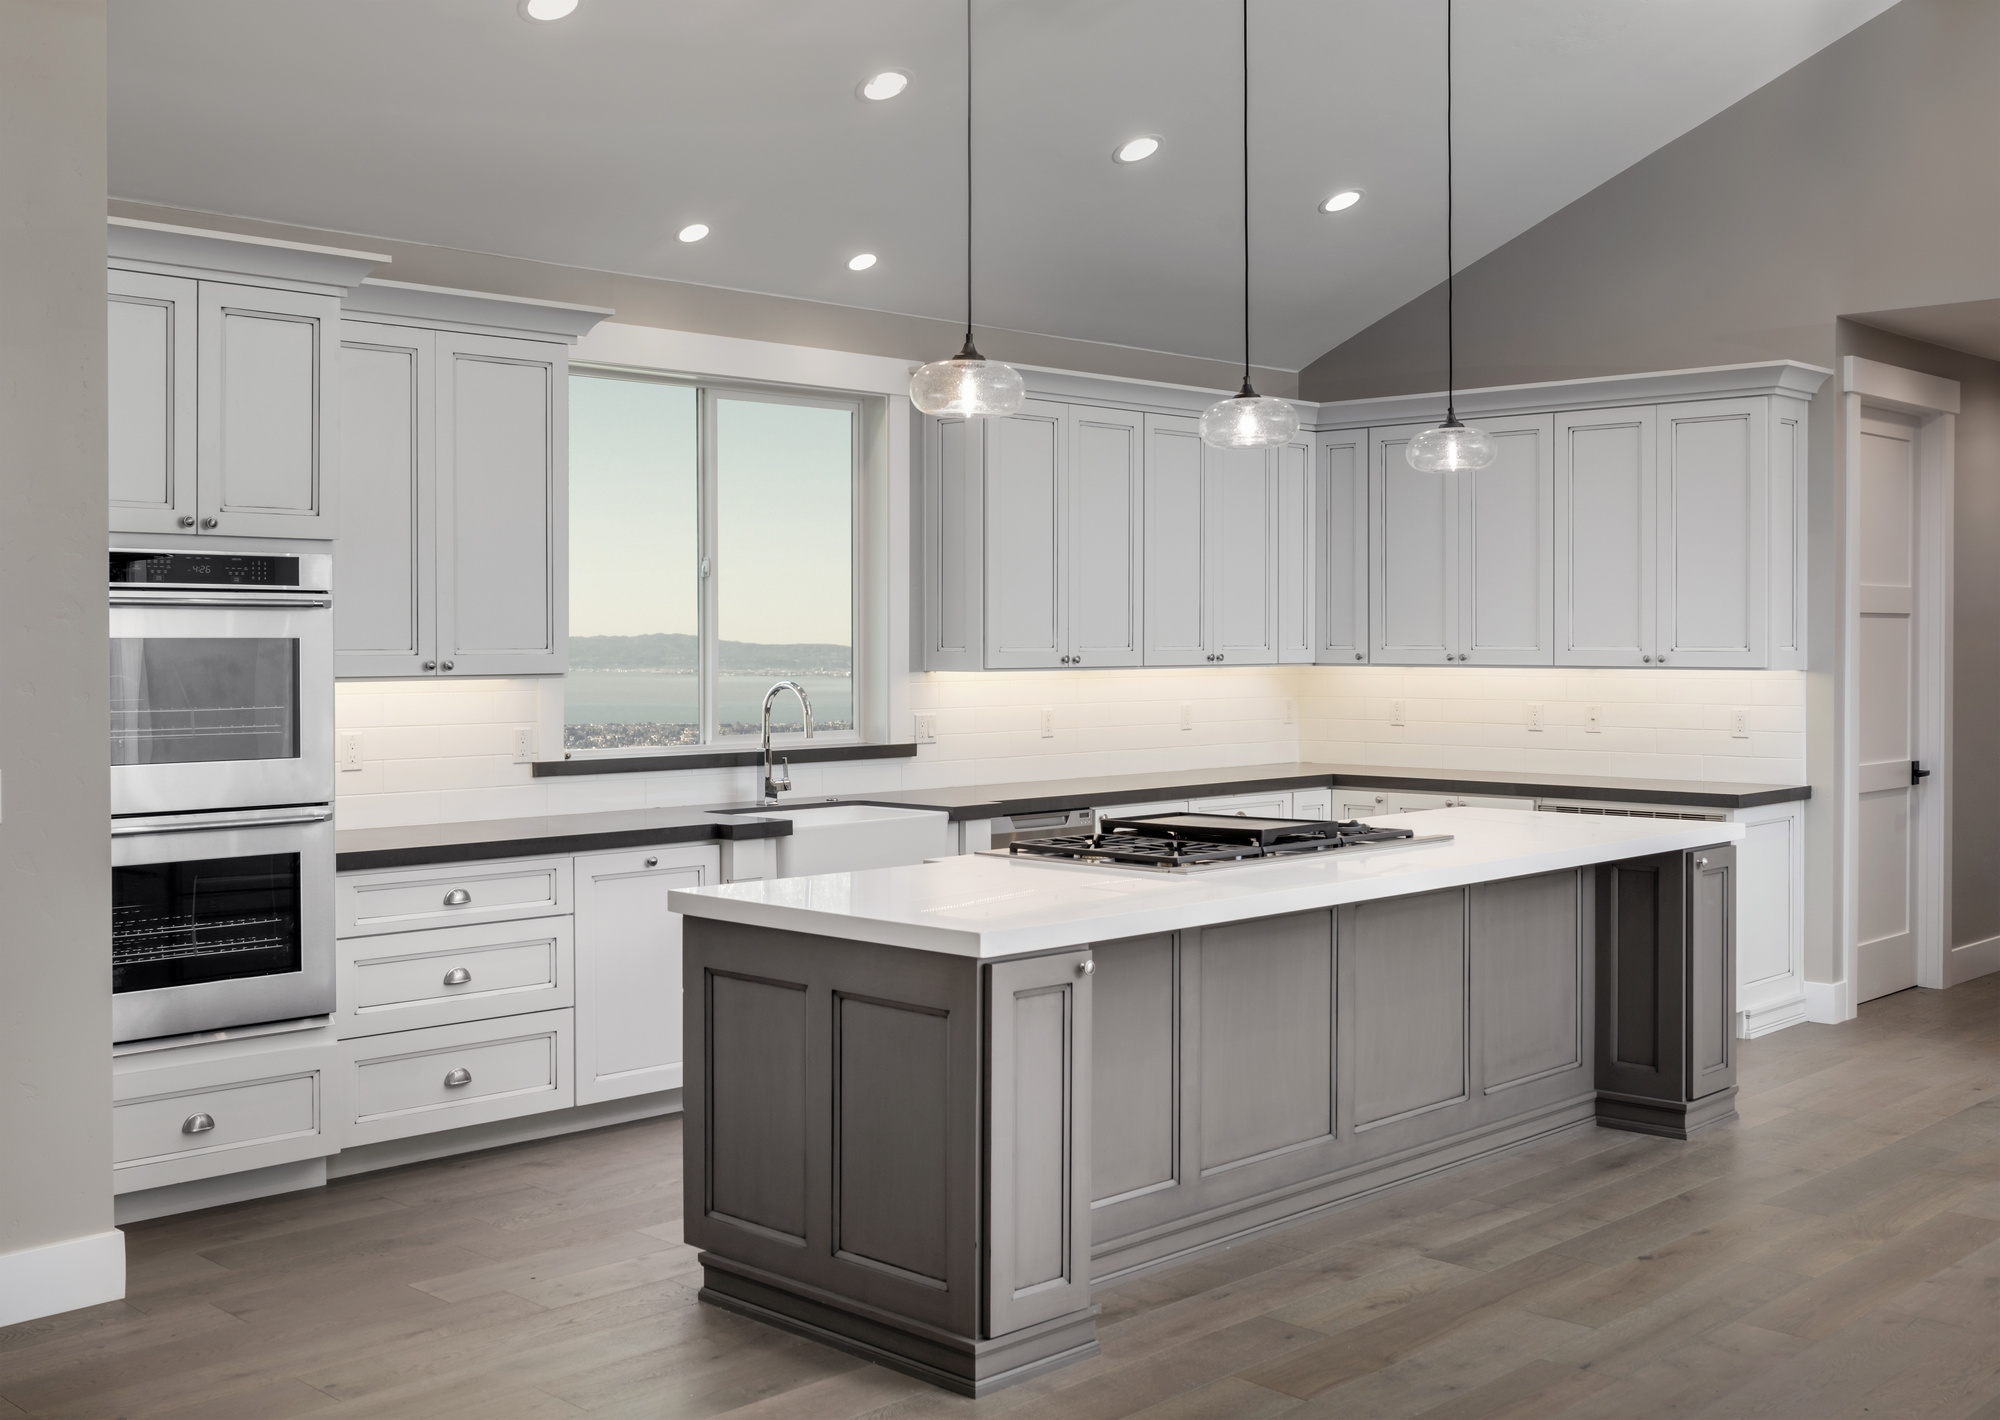 6 Popular Kitchen Cabinet Styles You Need to Know About on Modern Kitchen Counter  id=29615